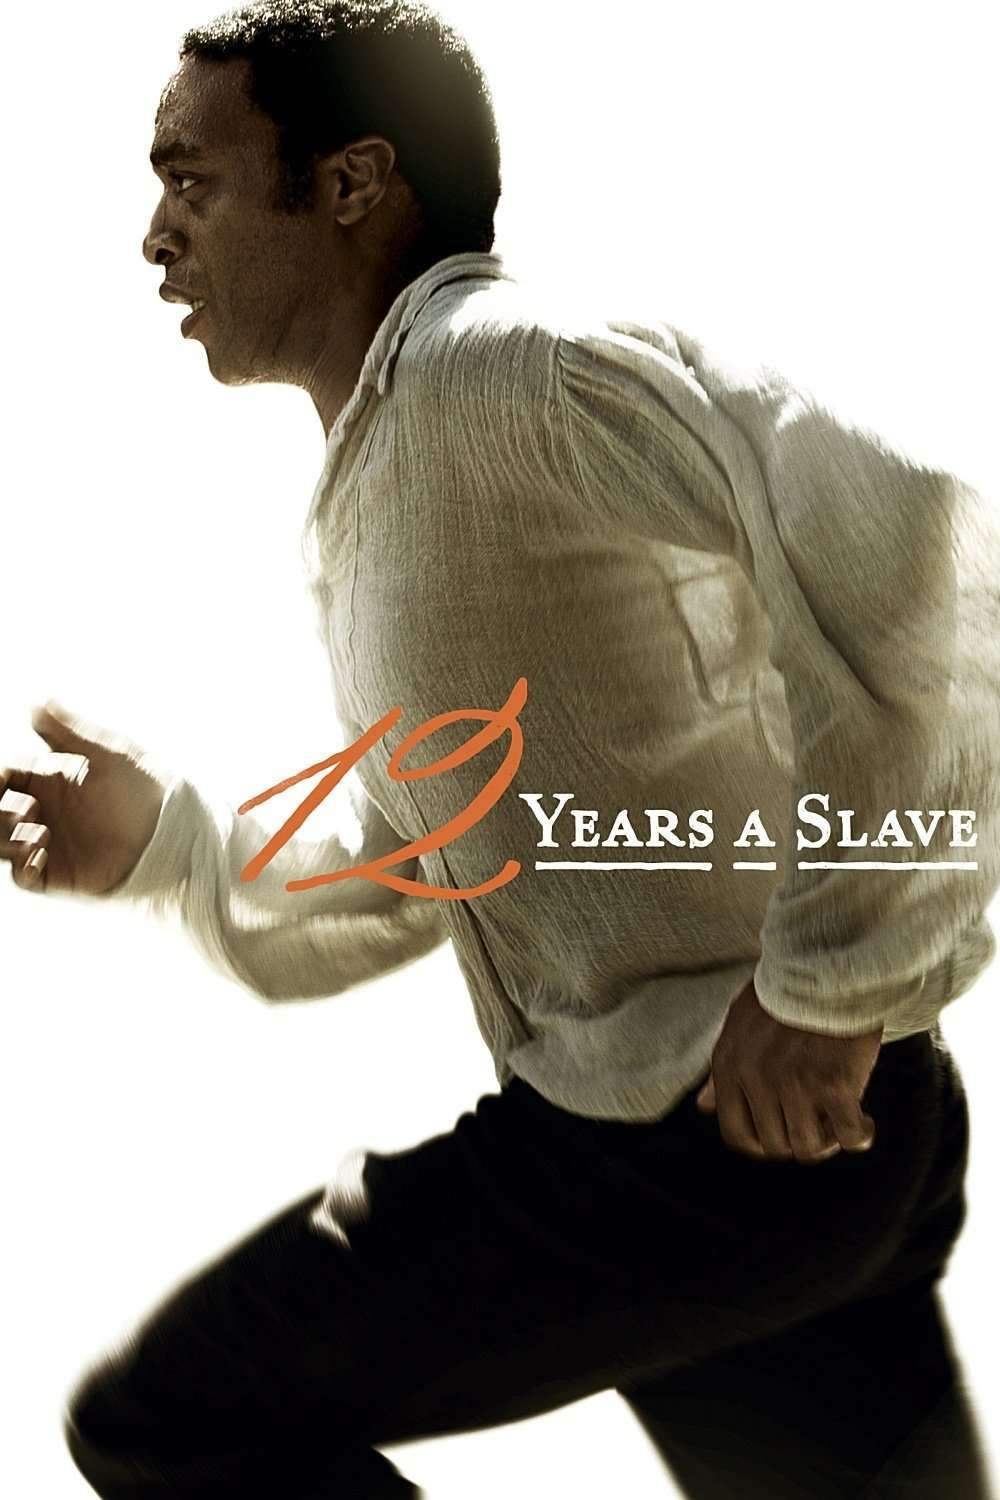 12 Years a Slave - 12 ani de sclavie (2013)